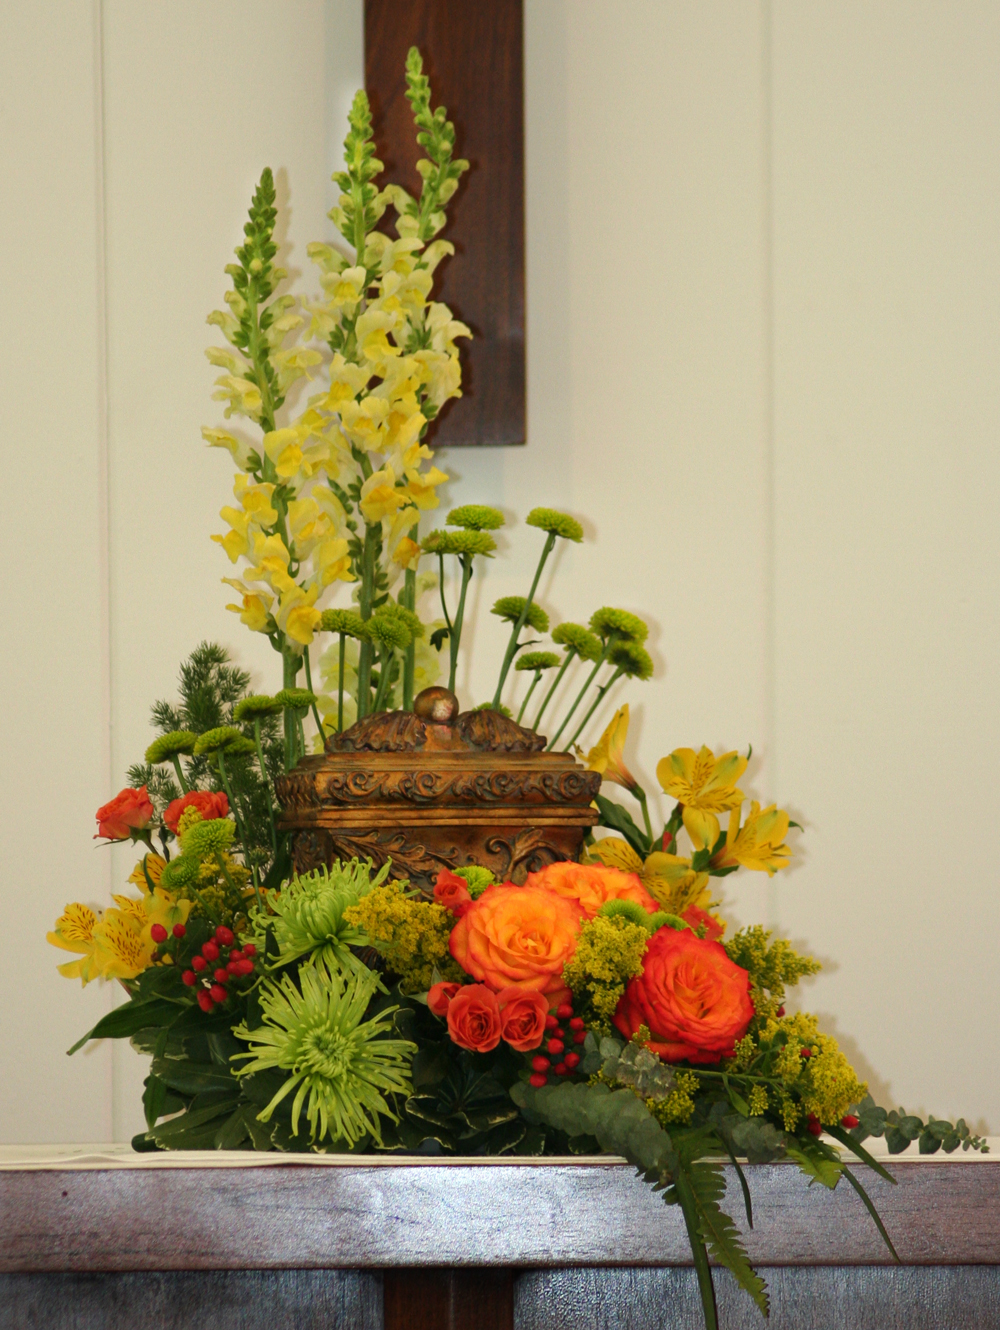 The importance of flowers for cremation urns cremation urn flowers izmirmasajfo Image collections